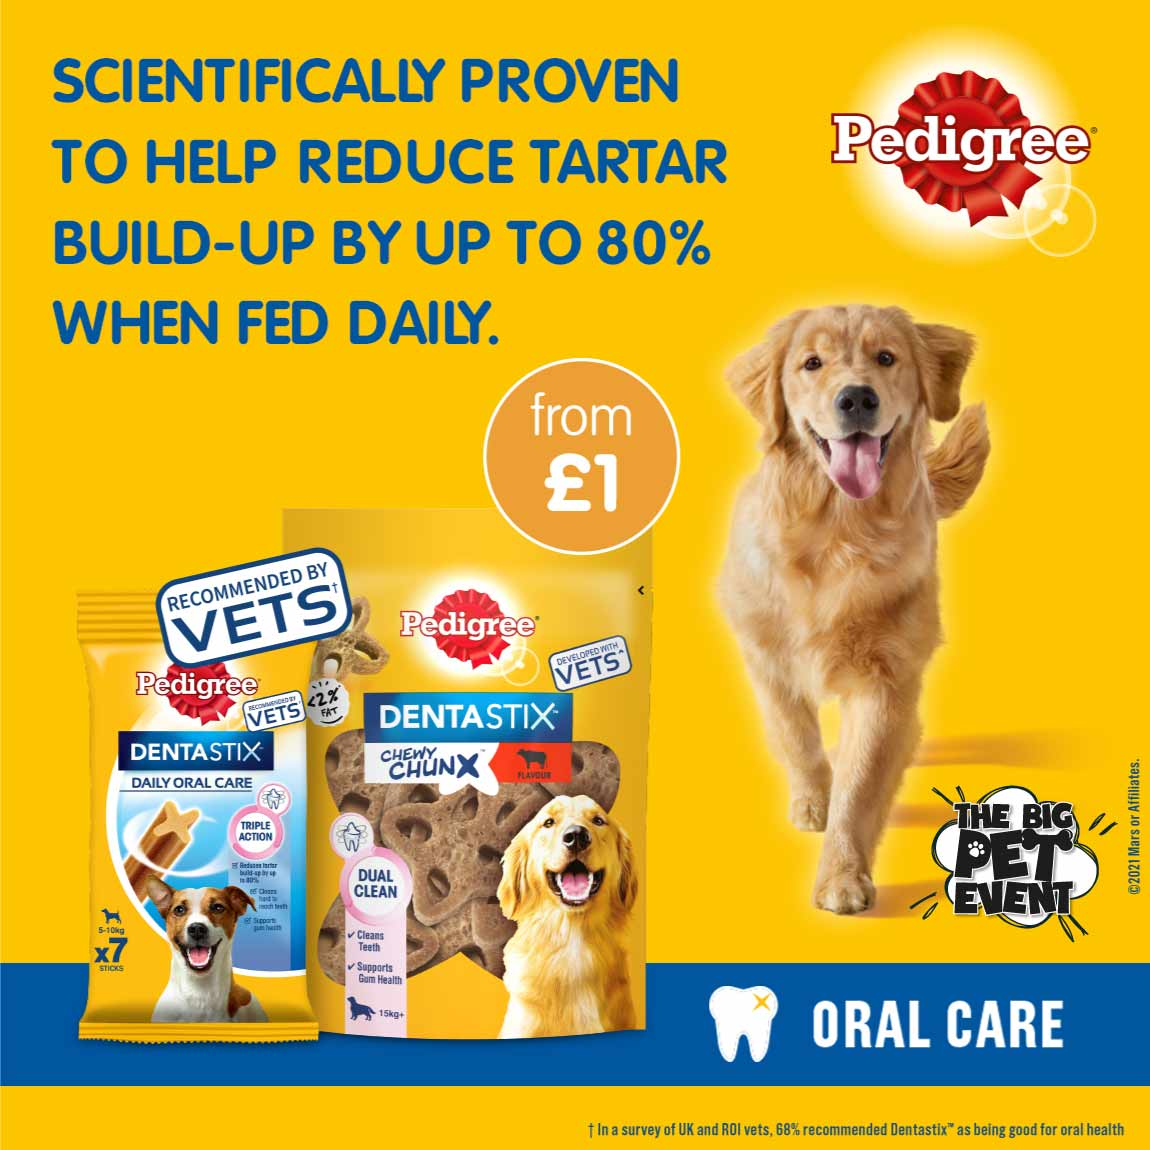 Save on Pedigree and Dreamies in the B&M Pet Event.